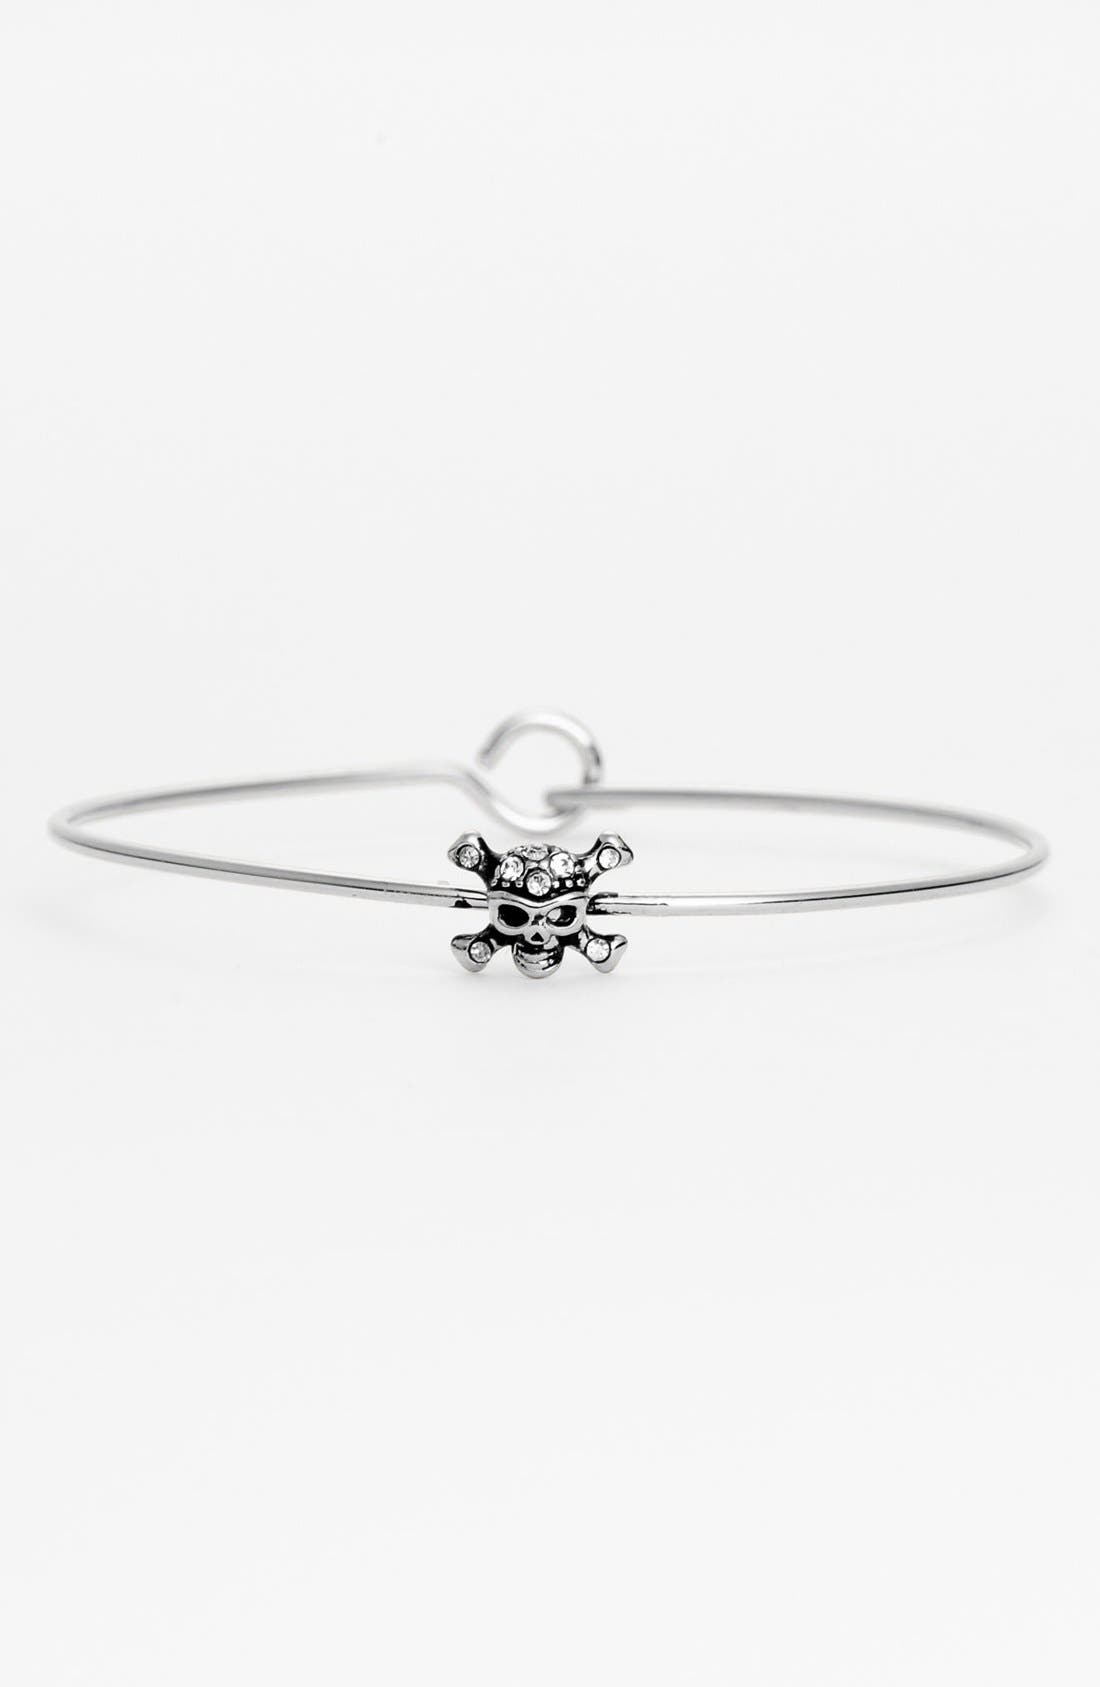 Alternate Image 1 Selected - Ariella Collection Skull Station Bangle Bracelet (Nordstrom Exclusive)